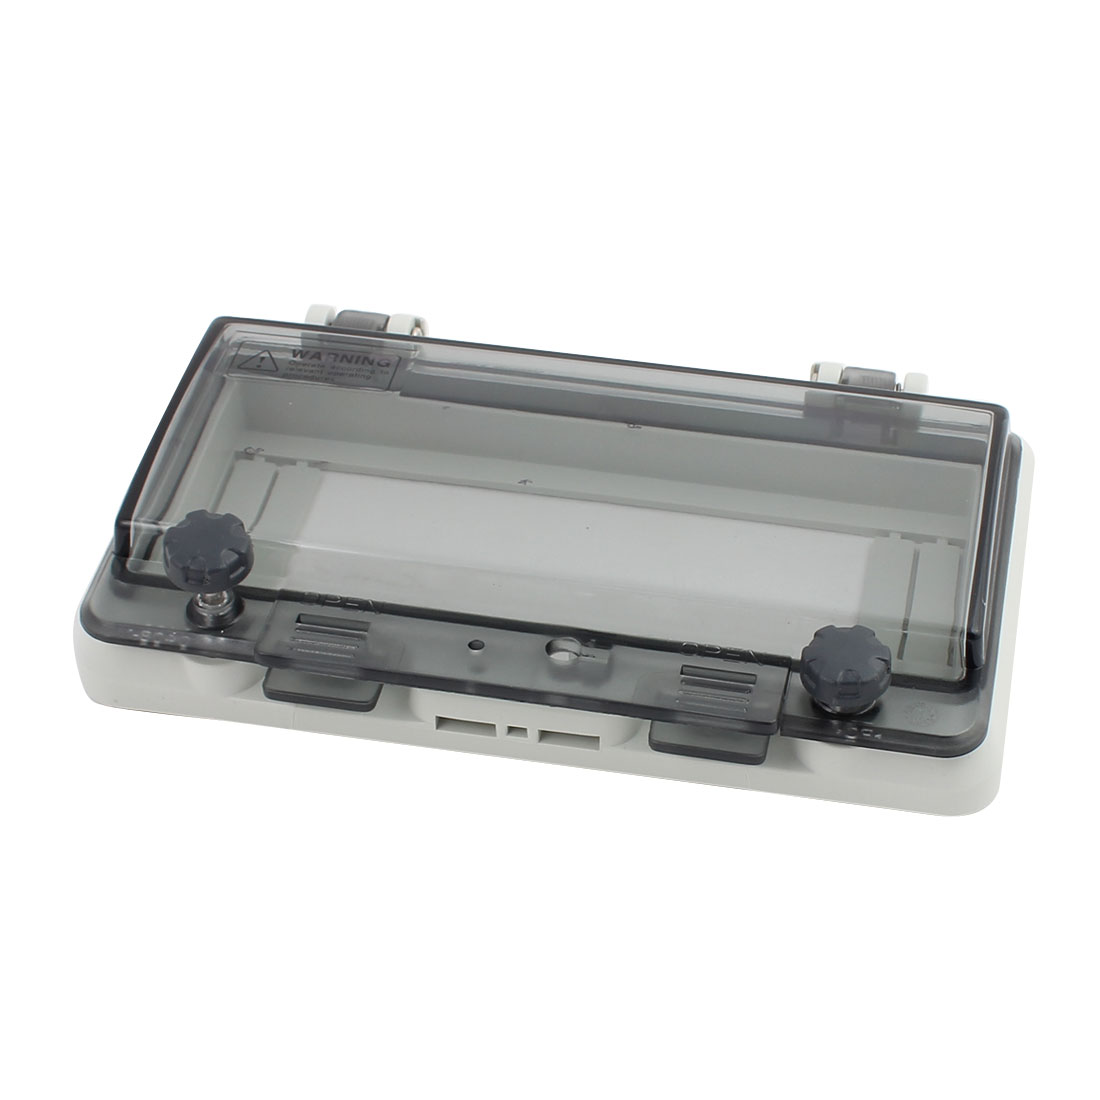 PWH-0408 163mm x 95mm x 43mm Waterproof Transparent Rectangle Box Cover